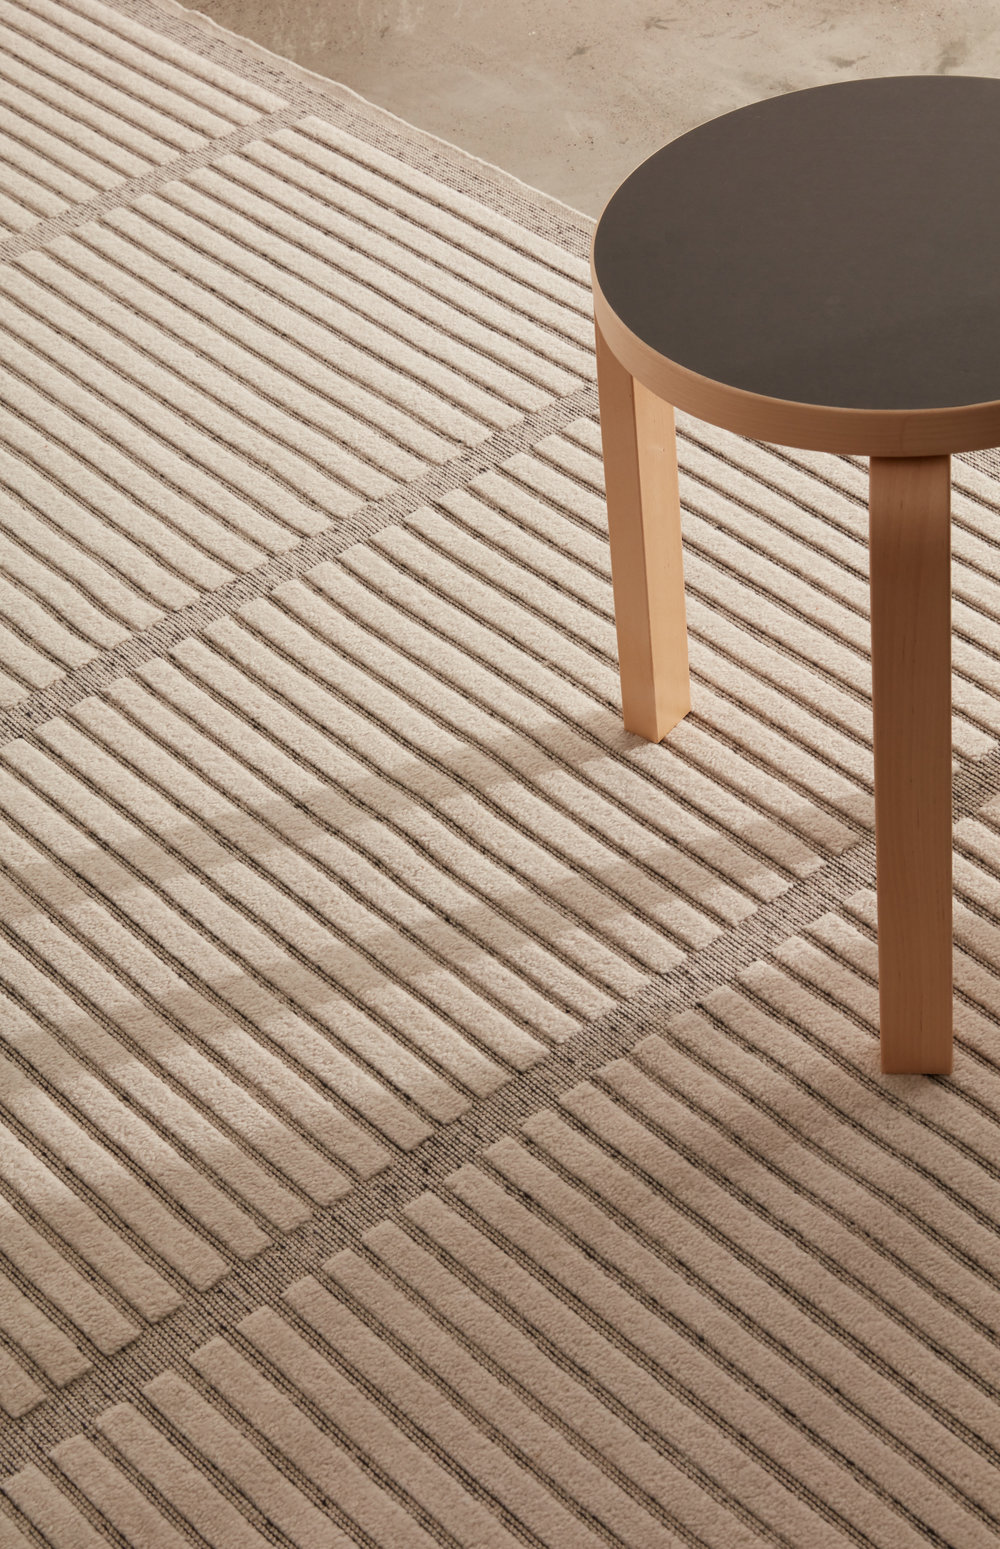 Aline Area Rug shown in 100% Cruelty-Free Merino in Breath and Ink in 5x7 size.